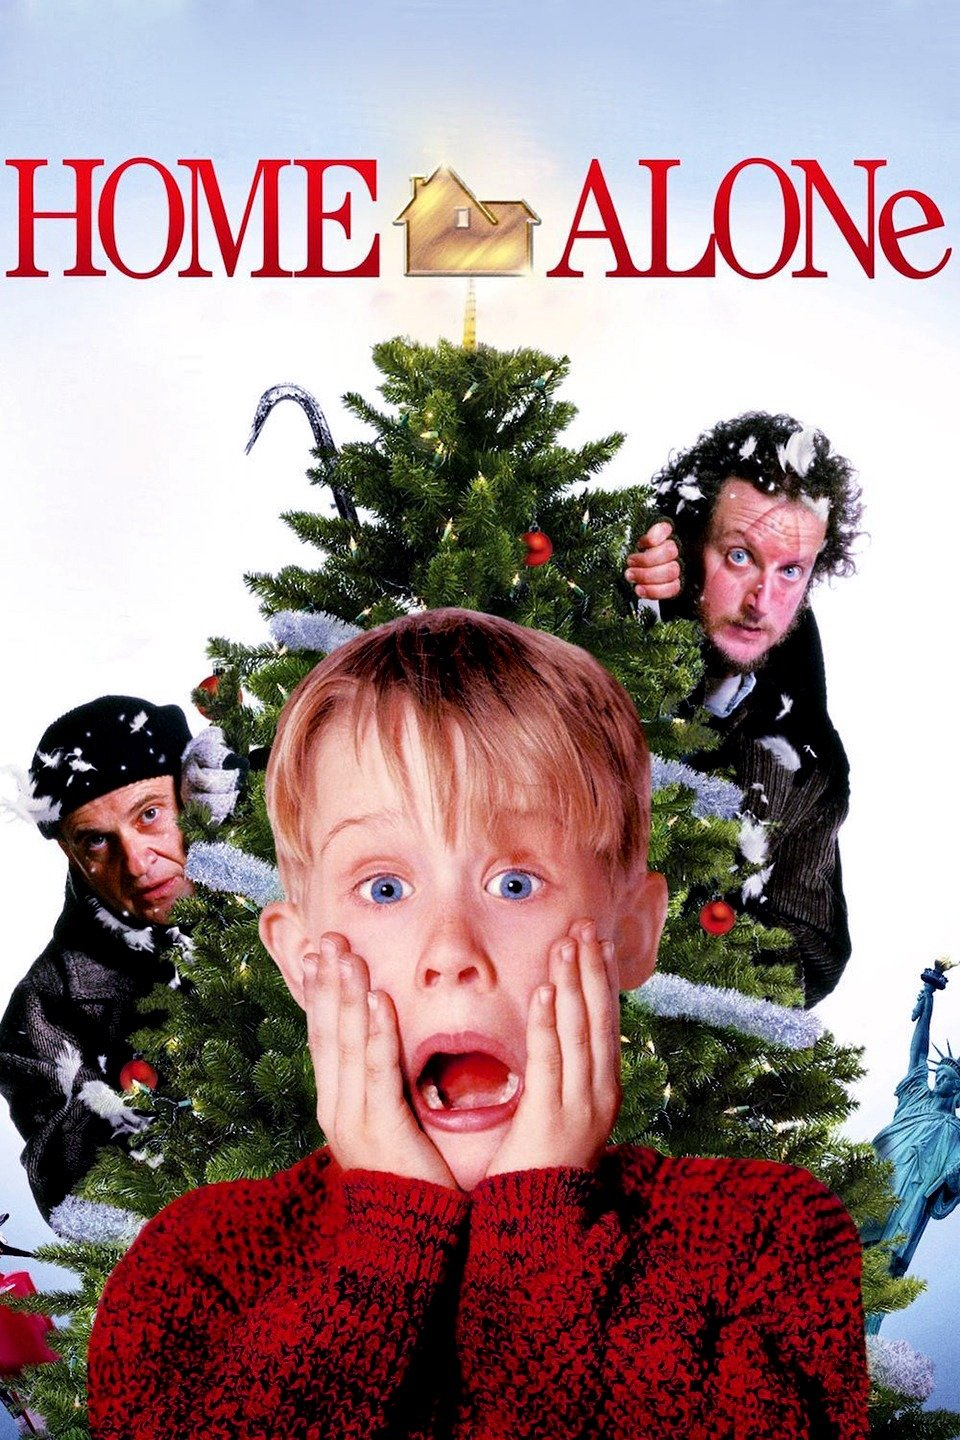 "Home Alone (1990) - ""Buzz, your girlfriend, WOOF!""This whole scenario is pretty much my worst nightmare in real life. Or was, I guess. Being forgotten and all alone in a giant house that creepy men are trying to get into. But it sure does make for a fun Christmas movie! Especially the classic bad-guy coming to the rescue bit!Fun Fact: One year, my whole extended family on my mom's side went to Mammoth, CA for Christmas. Me and my cousins camped out in the living room on Christmas Eve and I swear, (I SWEAR!) I heard bells on the roof!"